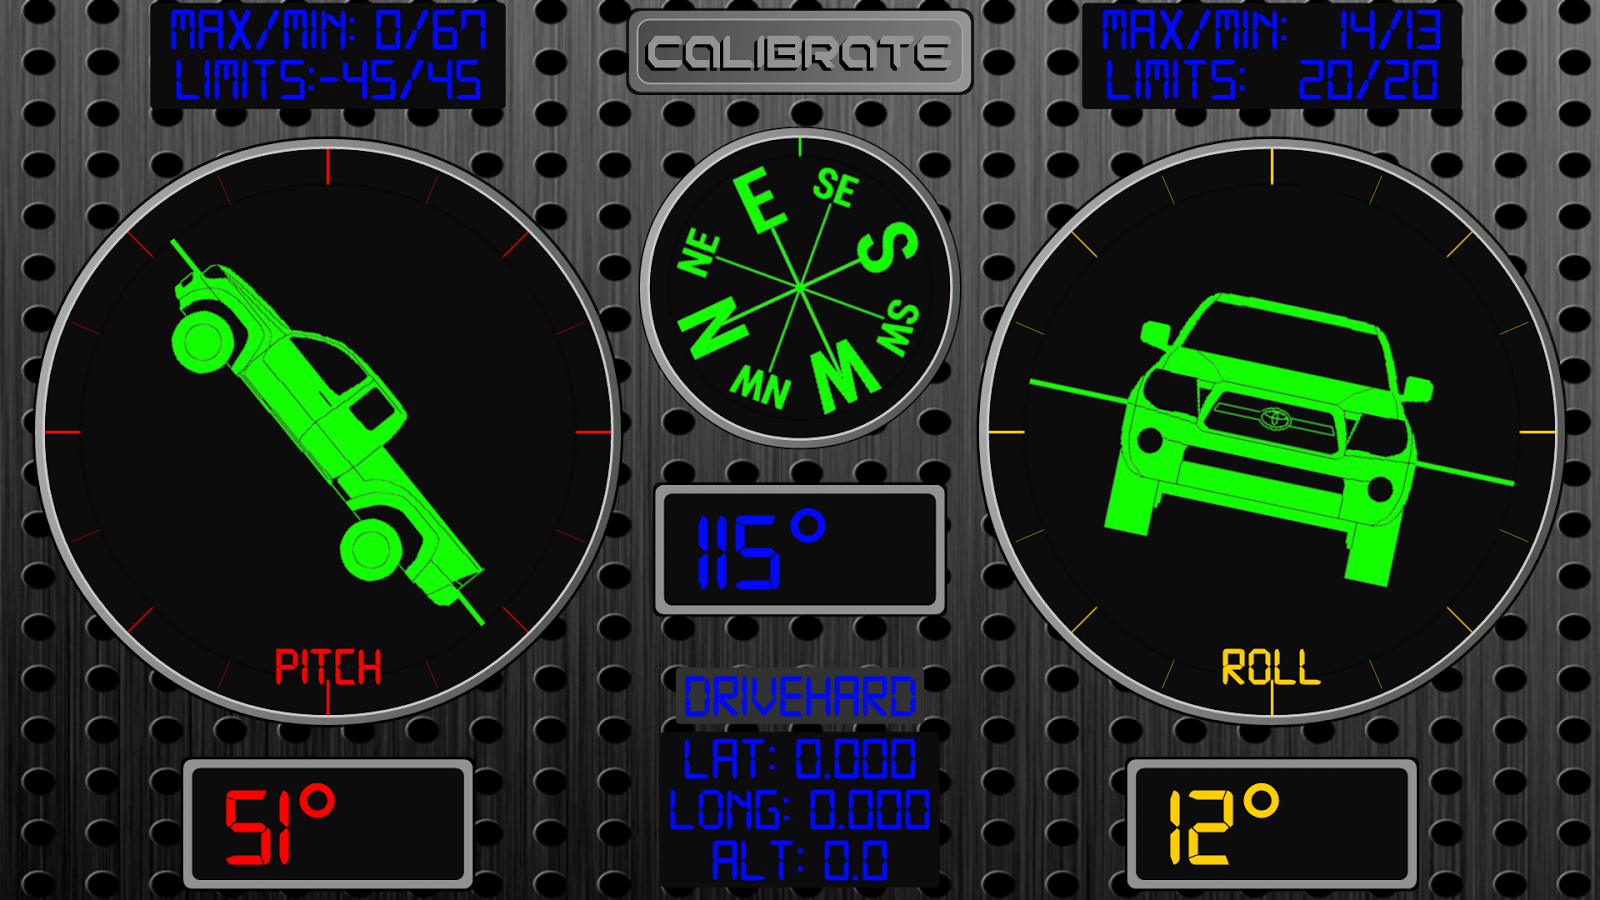 RollMeOverTrial - Inclinometer - screenshot